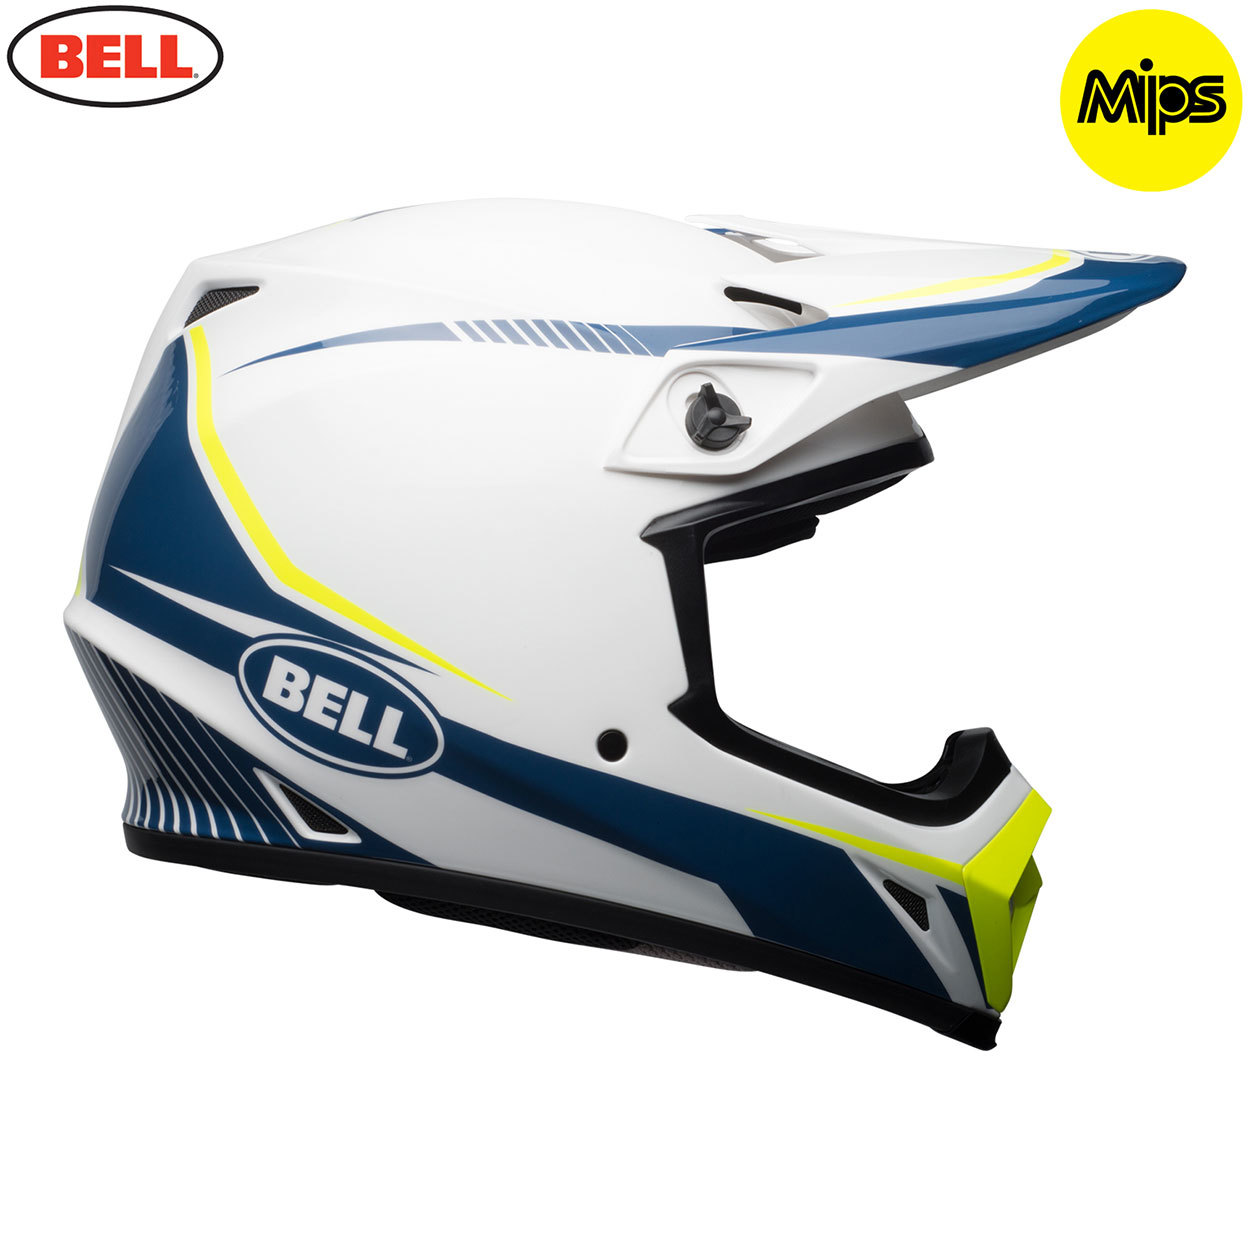 bell mx 2018 mx 9 mips adult helmet torch white blue yellow midwest racing. Black Bedroom Furniture Sets. Home Design Ideas